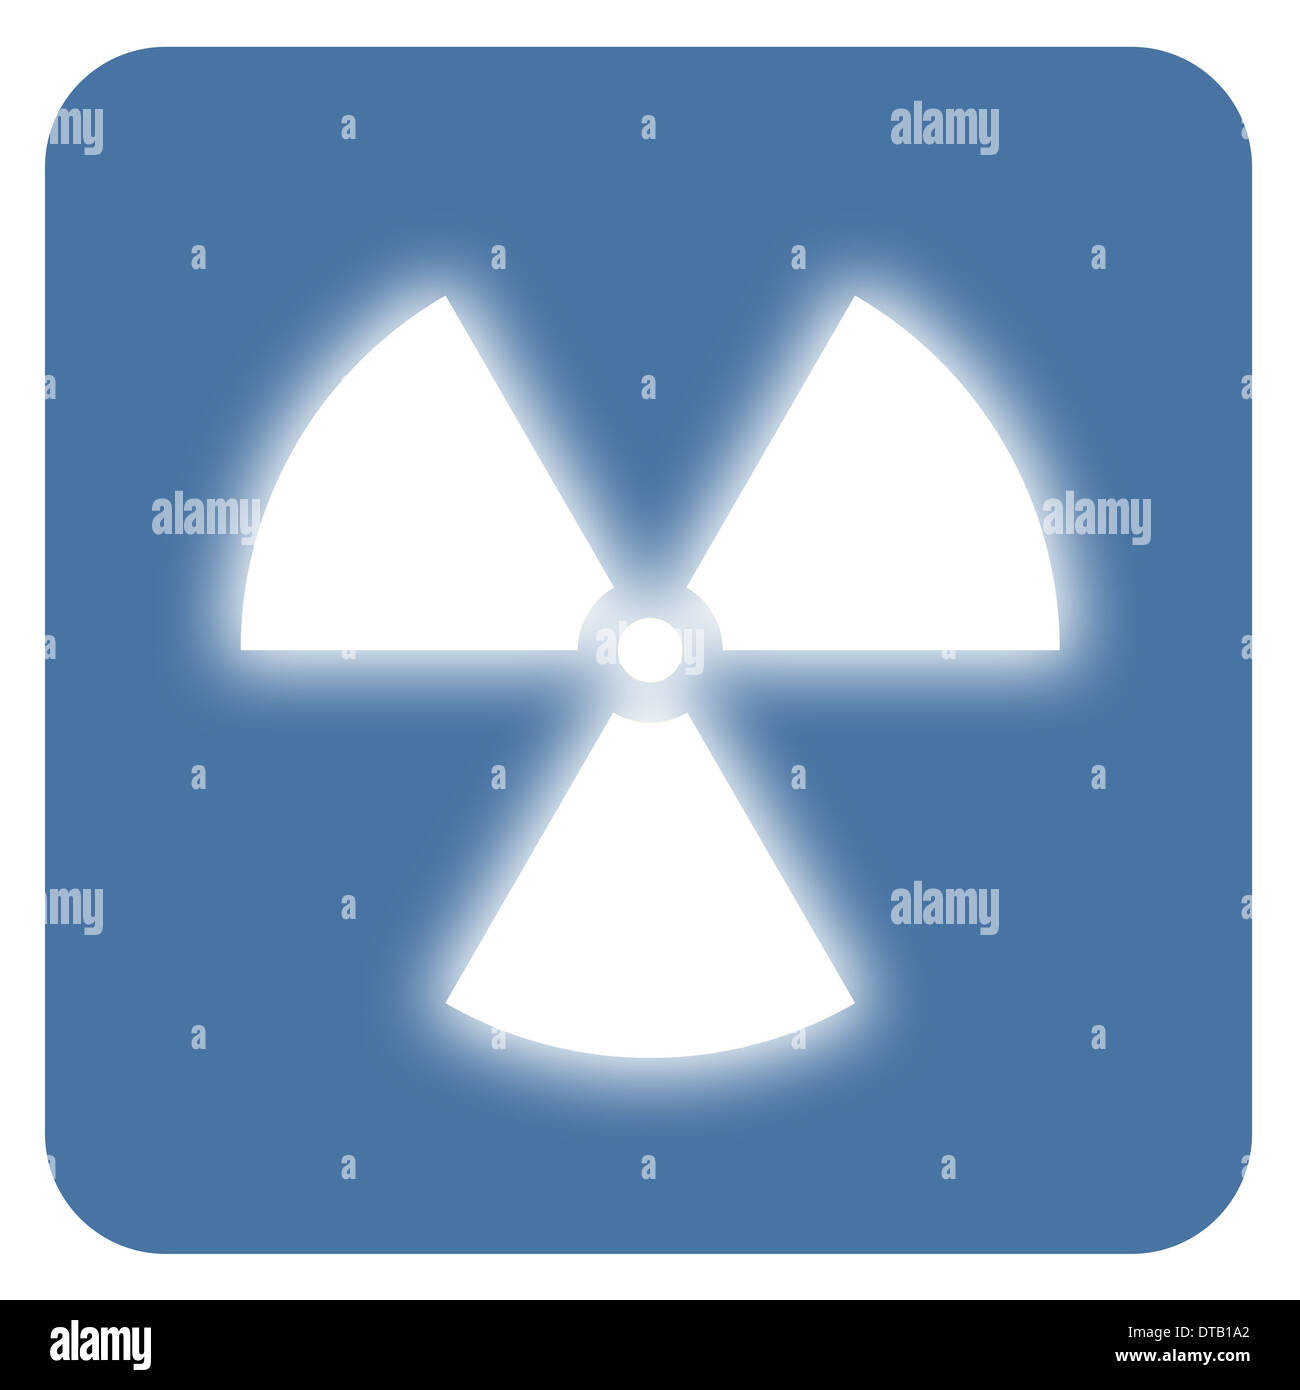 Nuclear radiation symbol on a blue background. Simple Flat design. Stock Photo